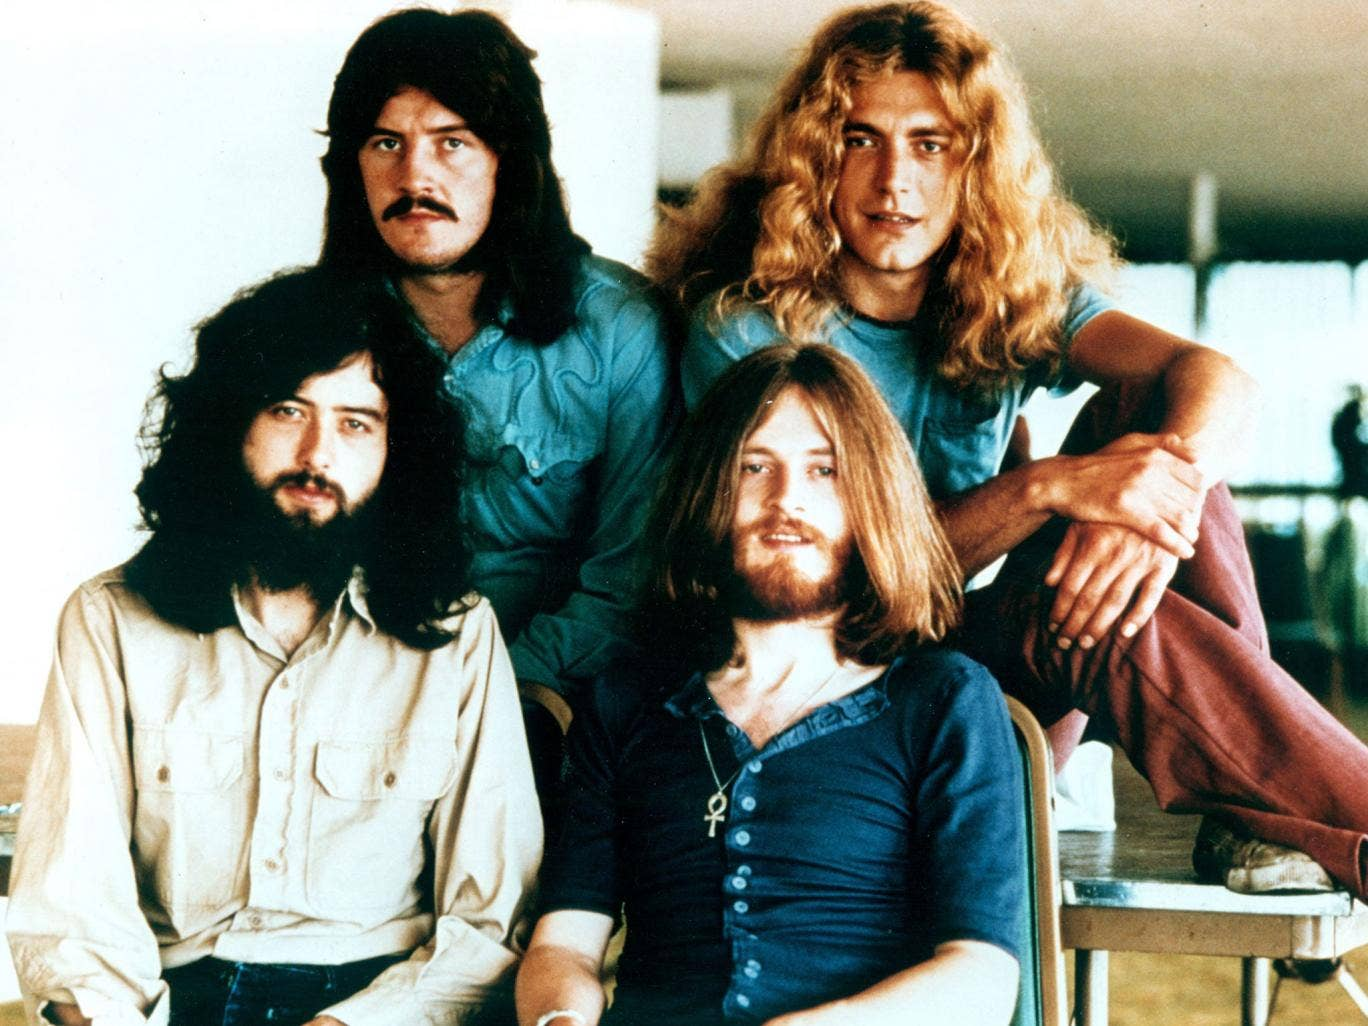 Rock band Led Zeppelin in the early 1970s